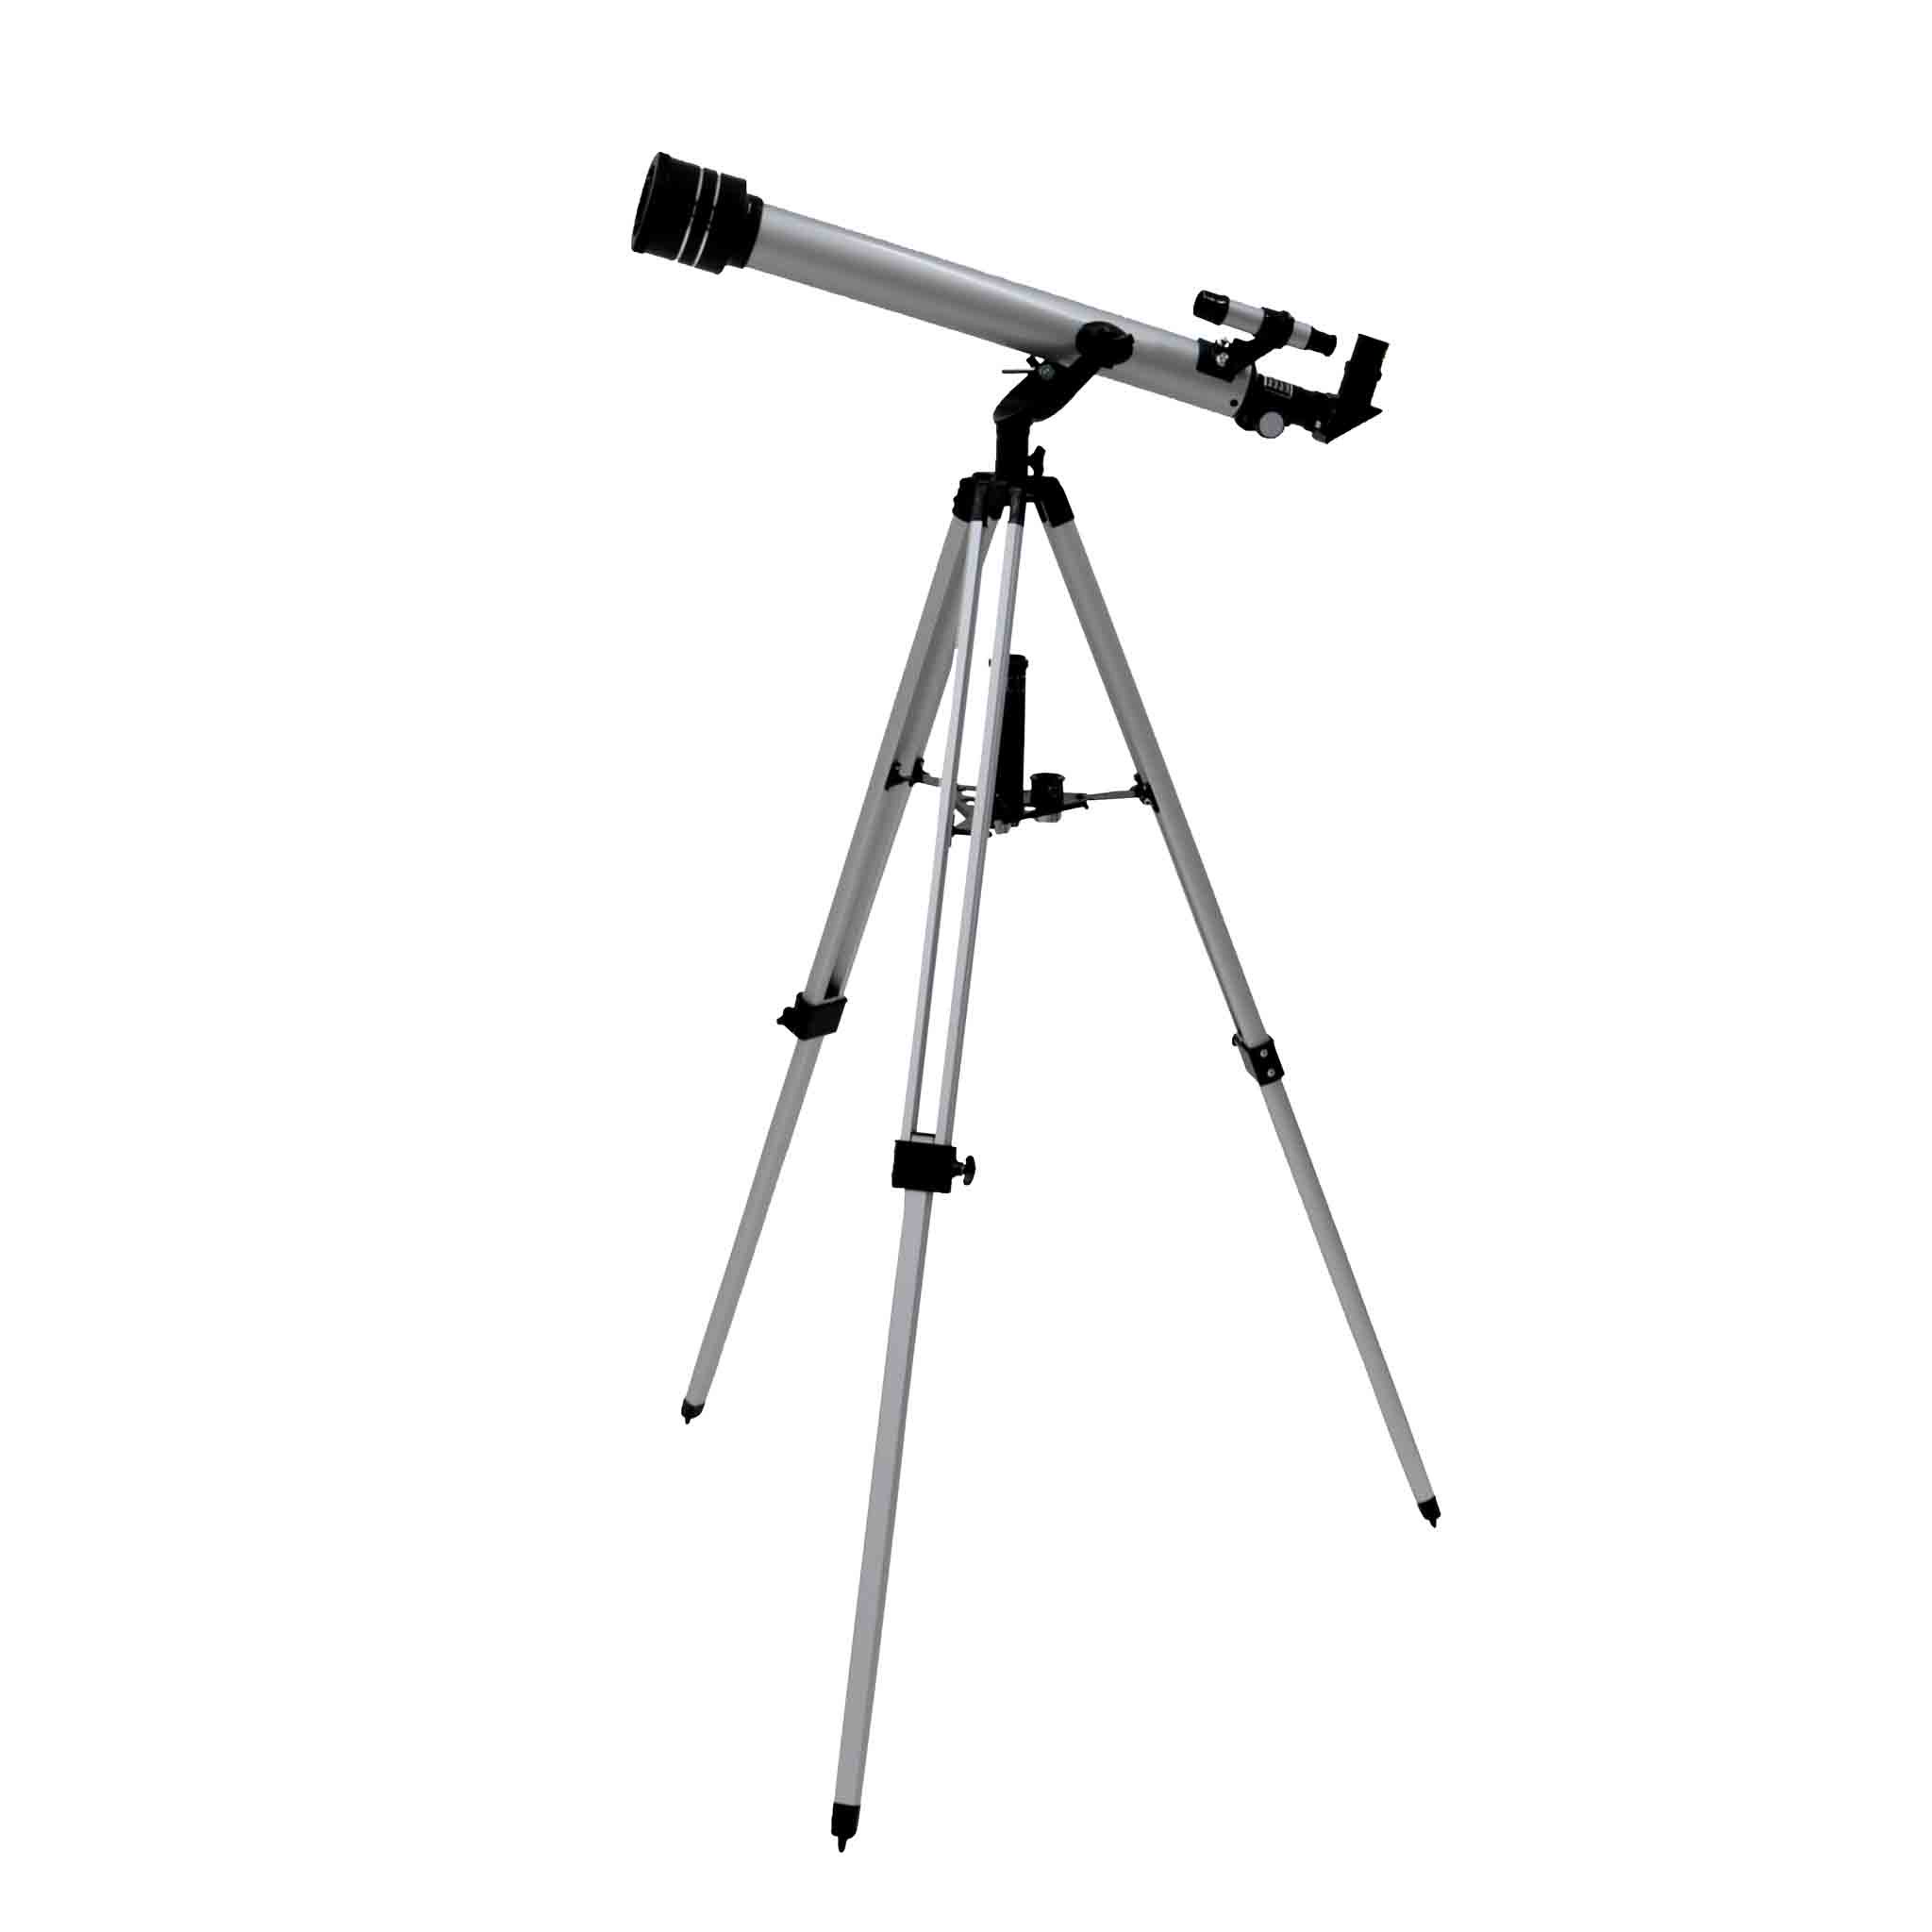 Performance 700-60 Astronomical Telescope FX-700 Series